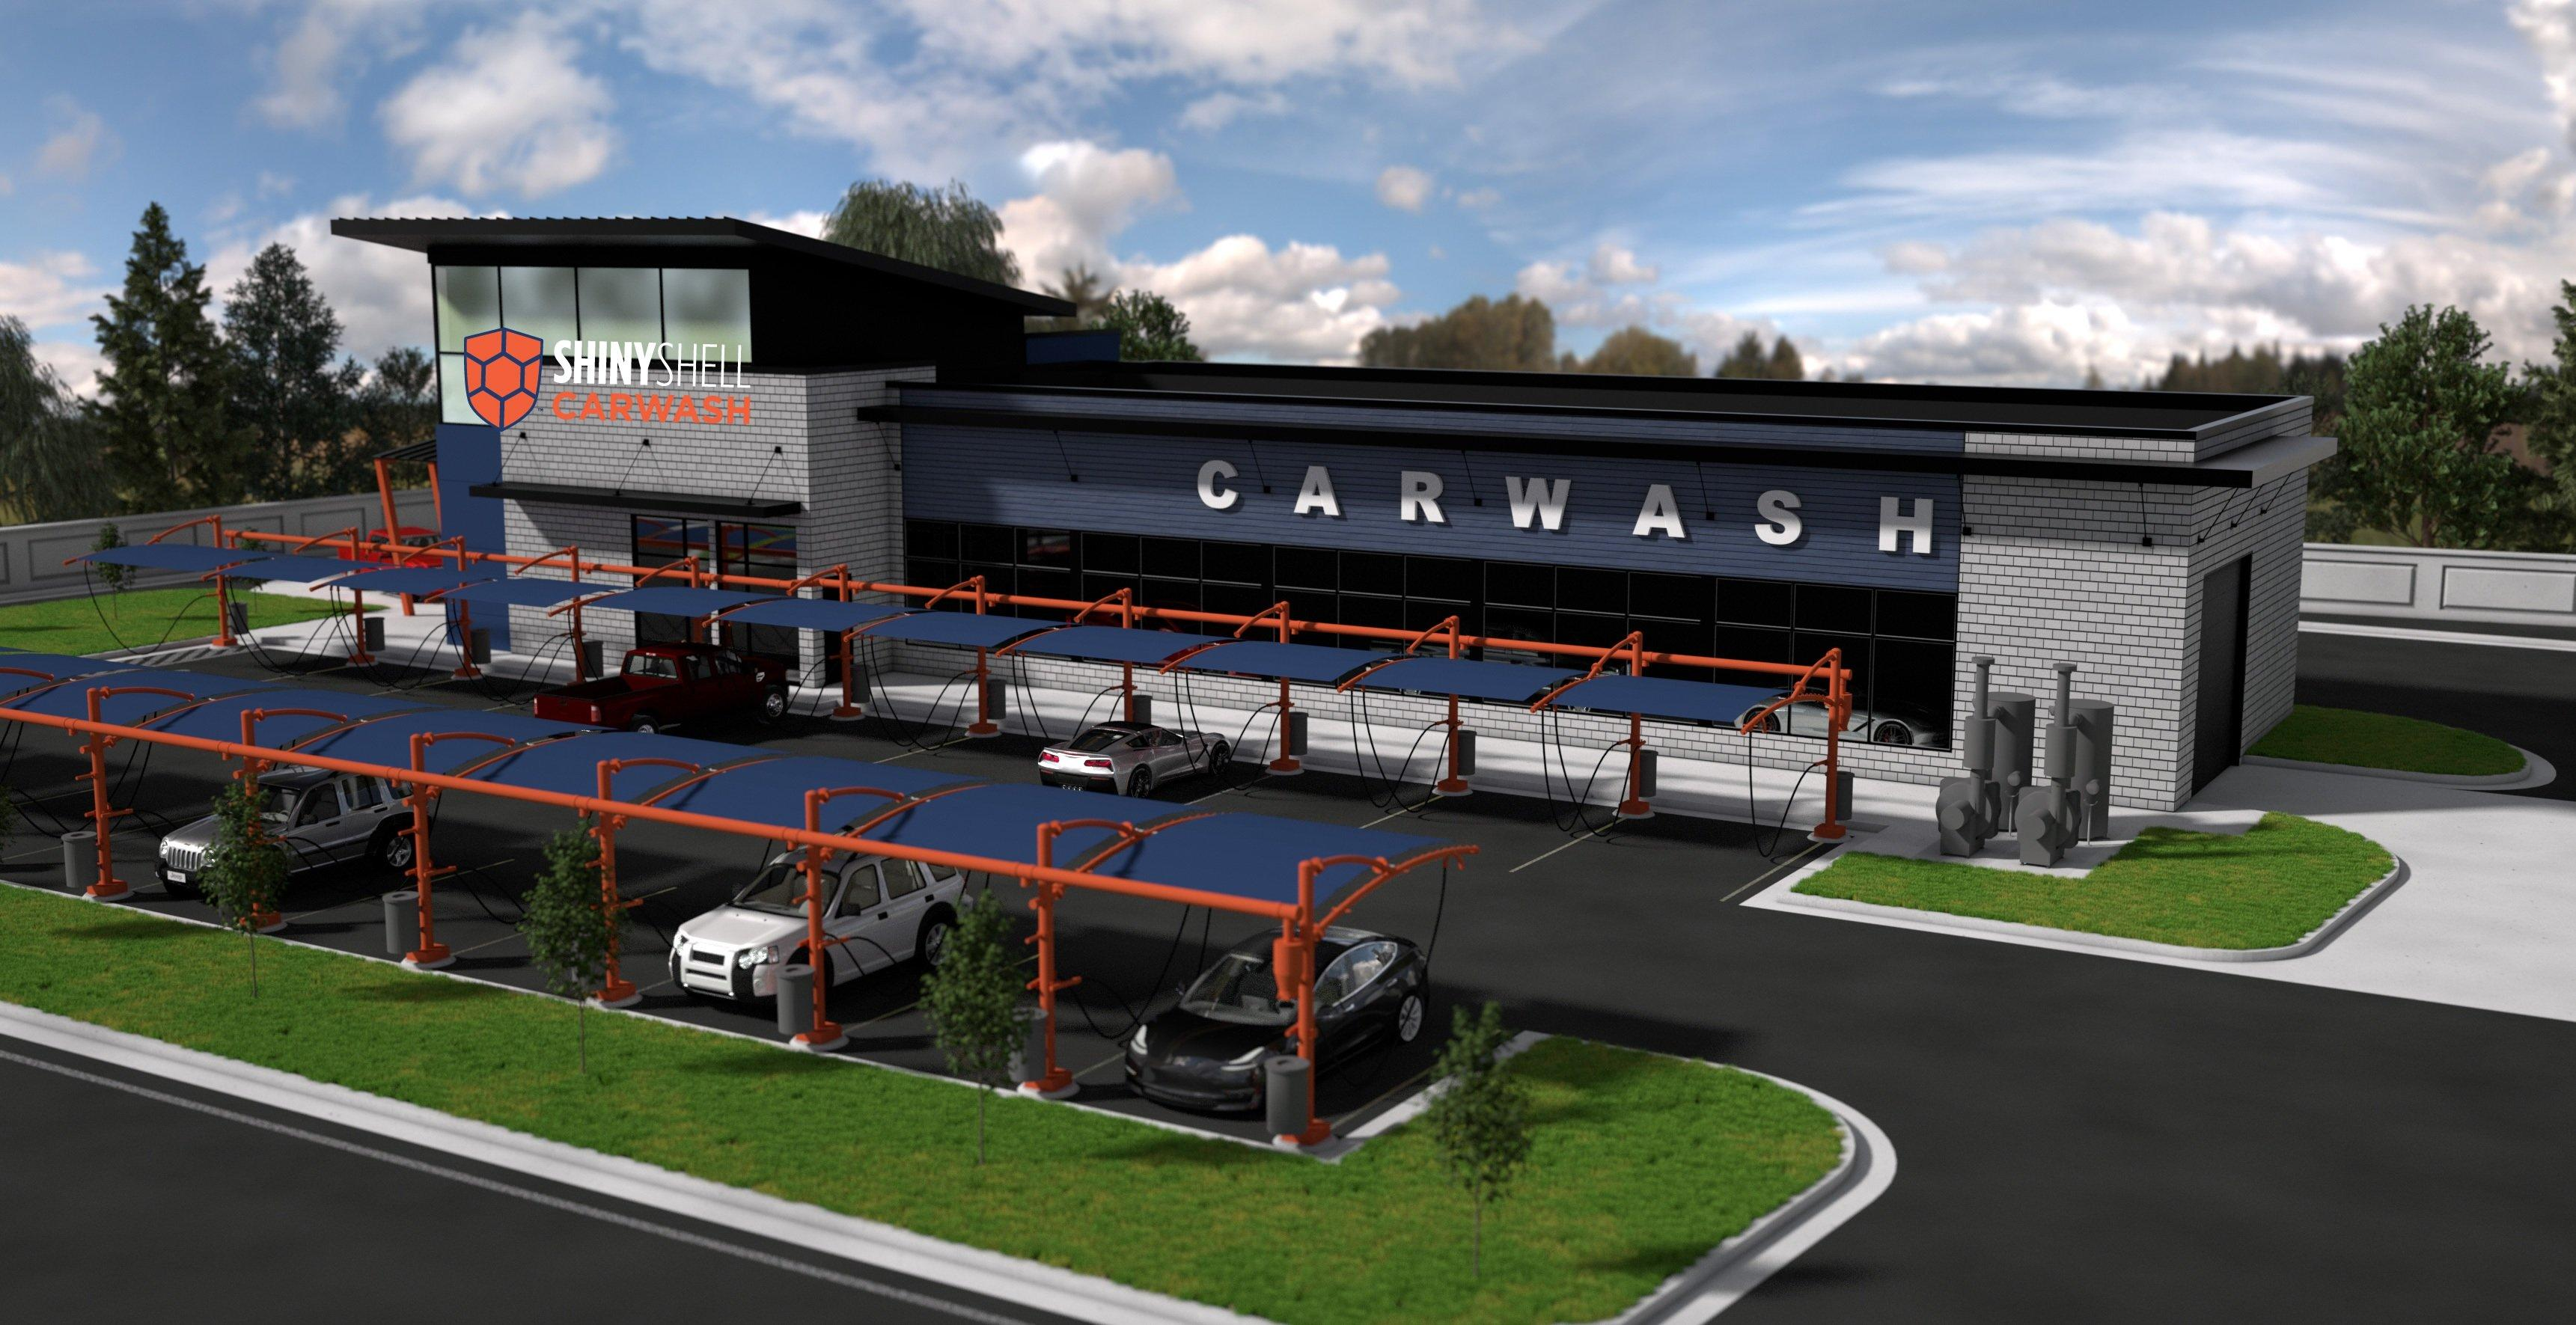 Shiny Shell Carwash To Build 10 Locations in Pennsylvania